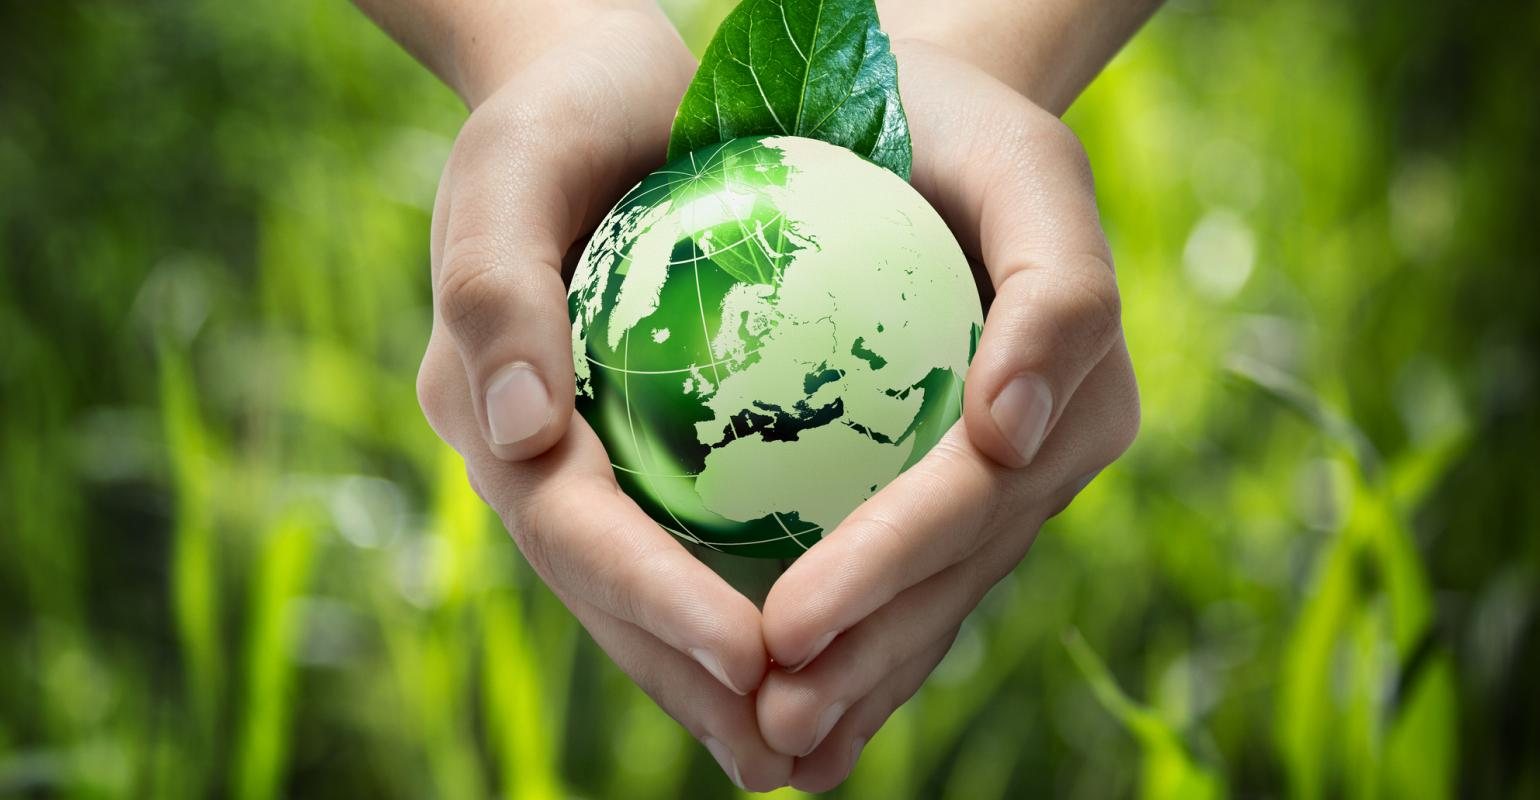 earth-hands-protect-environment-ts